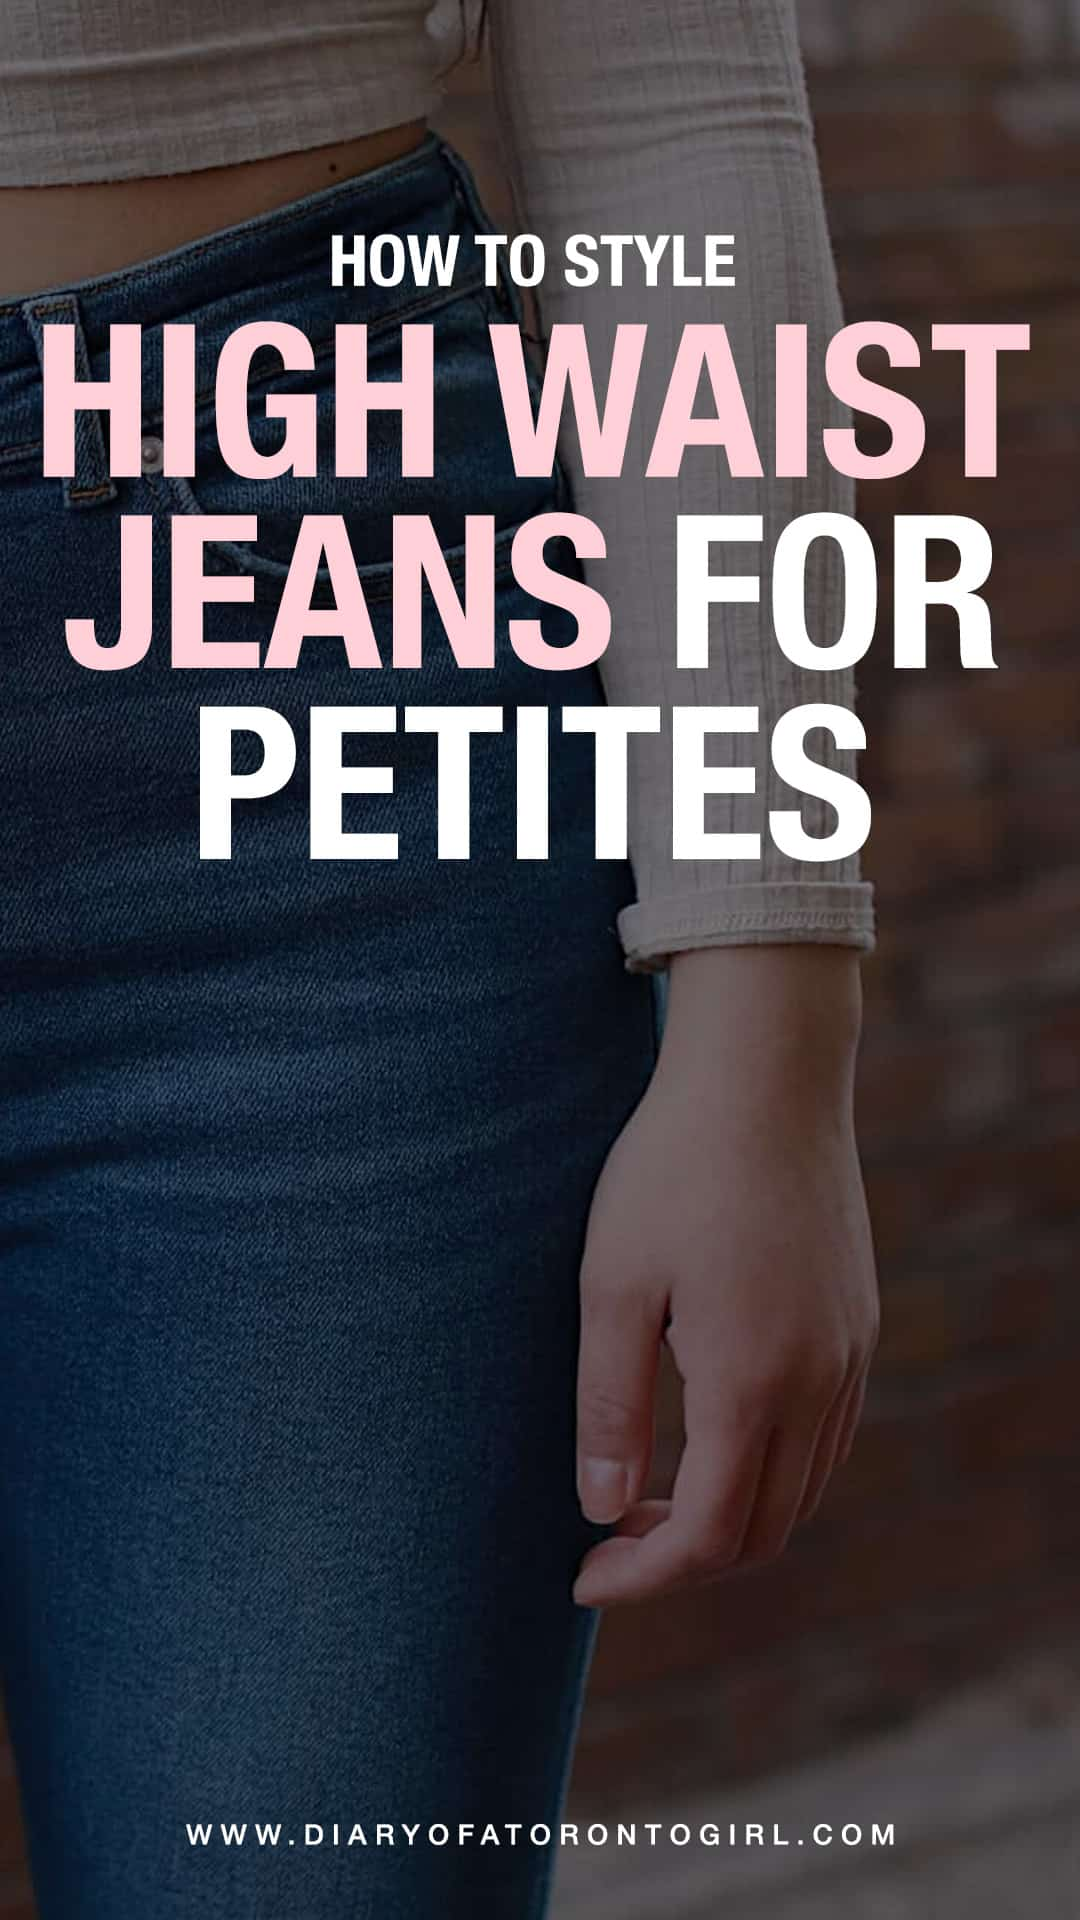 Looking for tips on how to wear high waisted jeans for petites? Here's how to style high waist denim as a short girl, as well as some of the best denim brands for petite women!